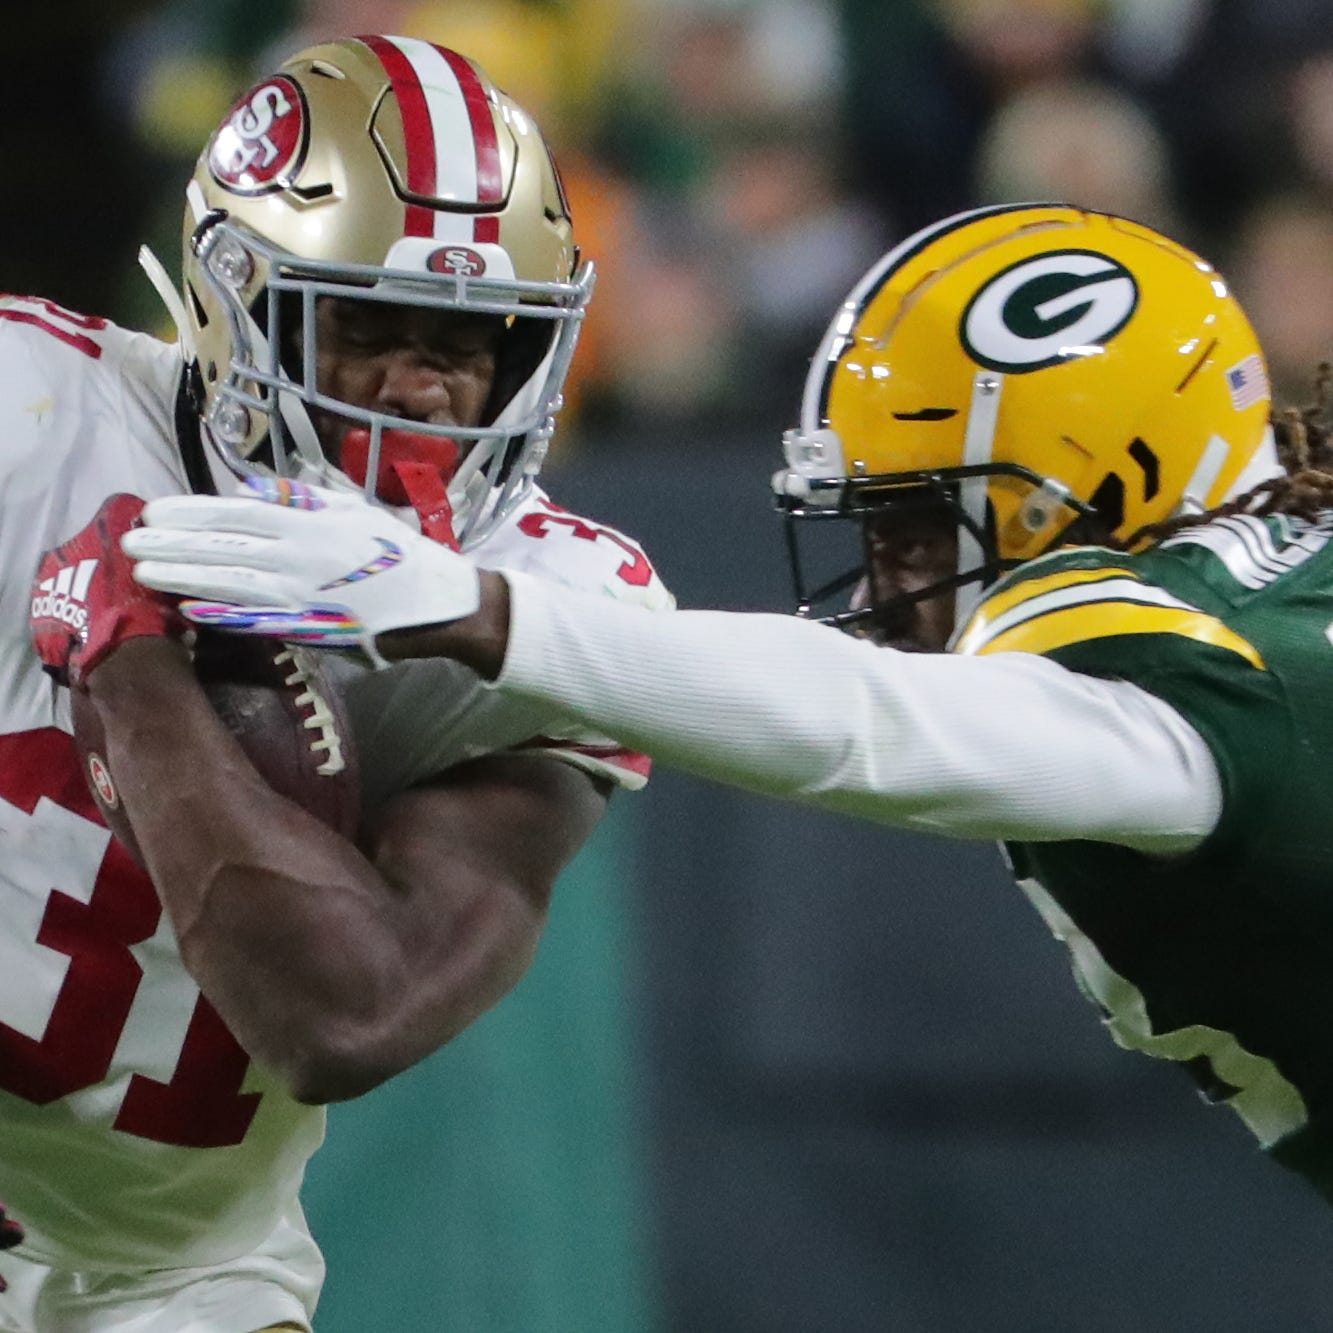 San Francisco 49ers' Raheem Mostert (31) breaks an arm tackle by Green Bay Packers cornerback Tramon Williams (38) during the fourth quarter of their game Monday, October 15, 2018 at Lambeau Field in Green Bay, Wis. The Green Bay Packer beat the San Francisco 49ers 33-30.MARK HOFFMAN/ MHOFFMAN@JOURNALSENTINEL.COM